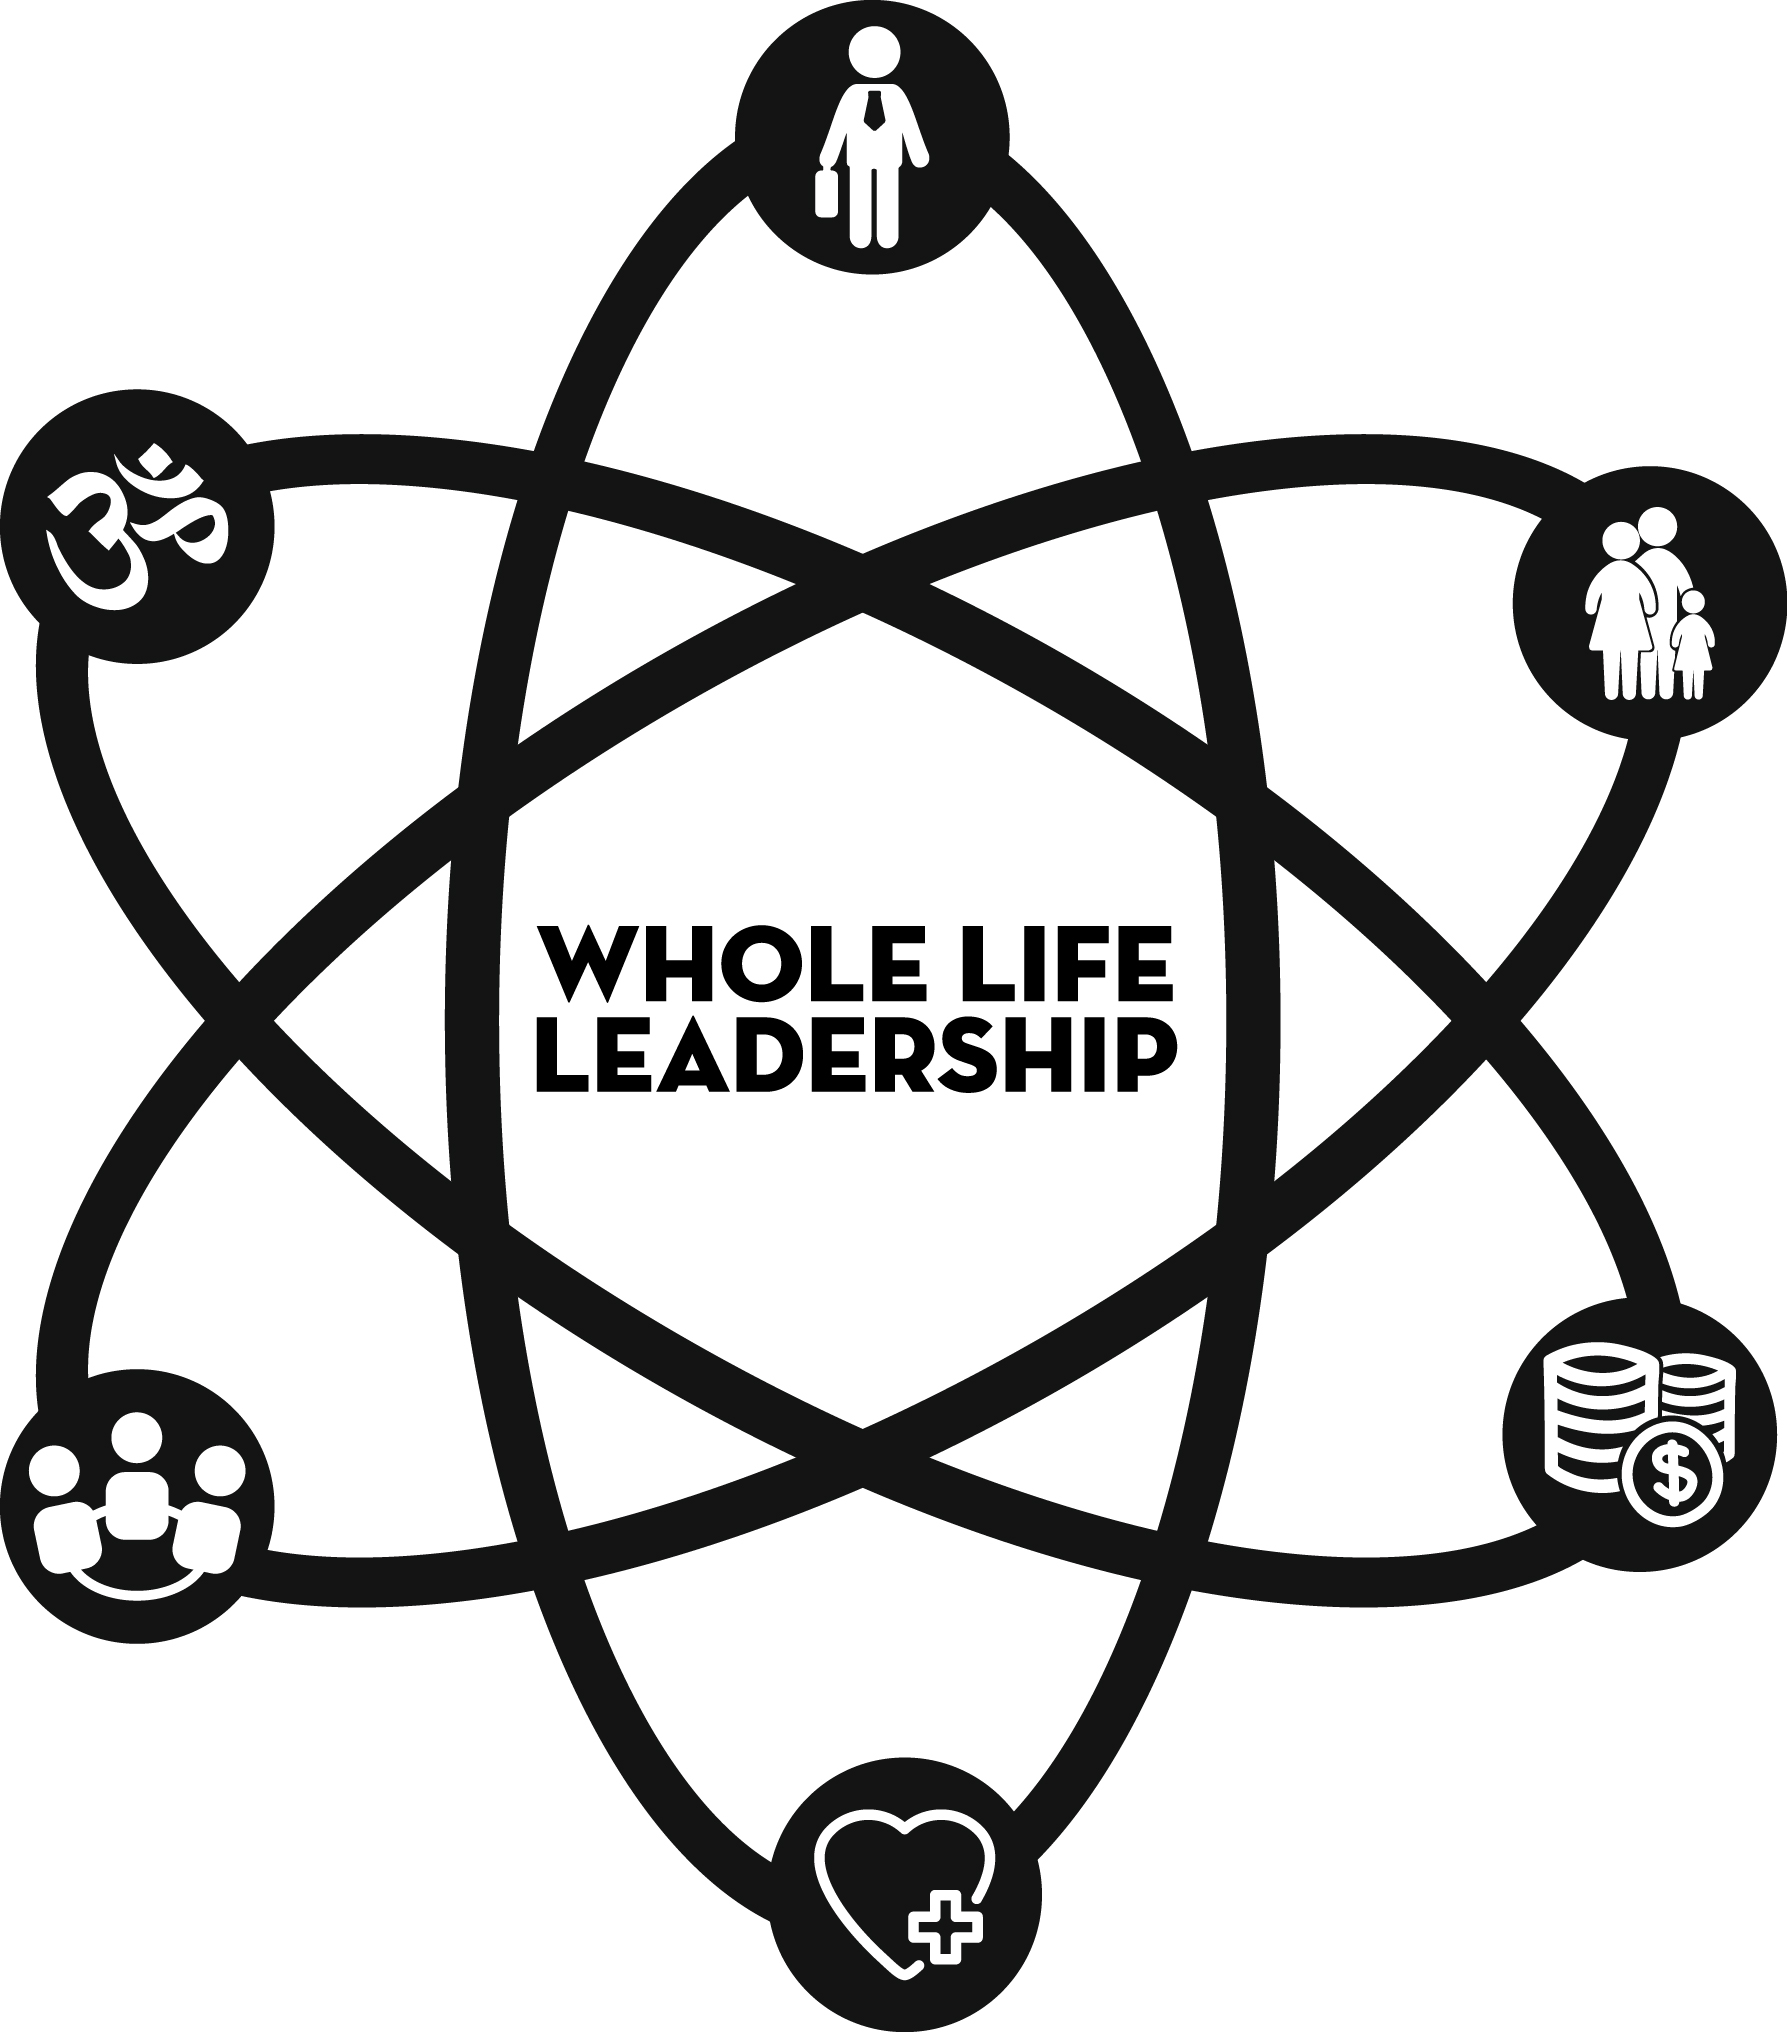 Whole Life Leadership